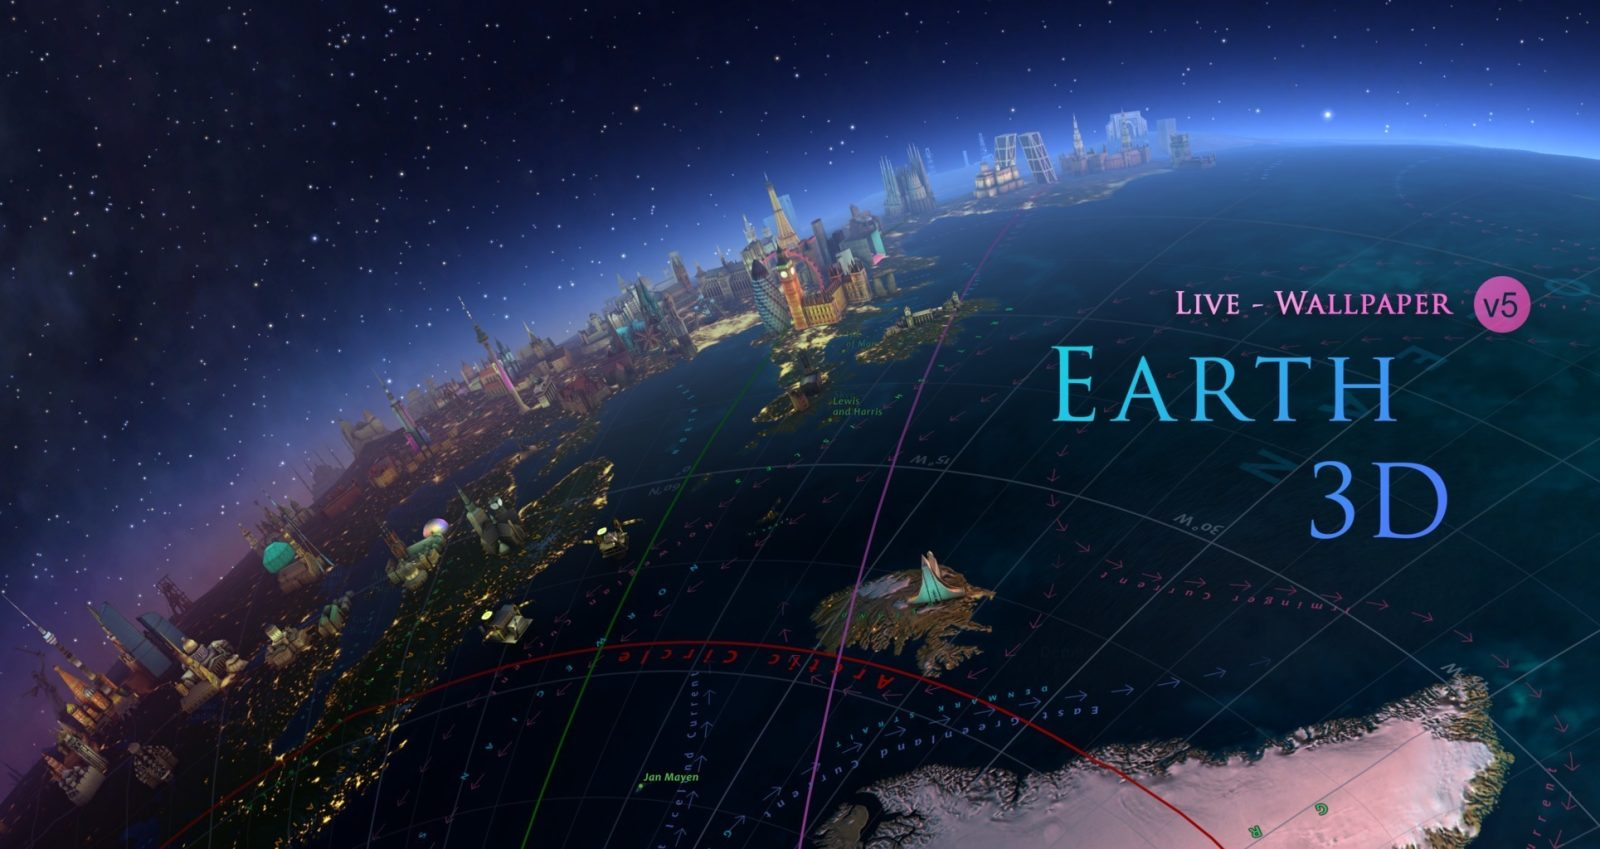 Live Wallpaper App Earth 3d For Mac Has Now Dropped Down To Just